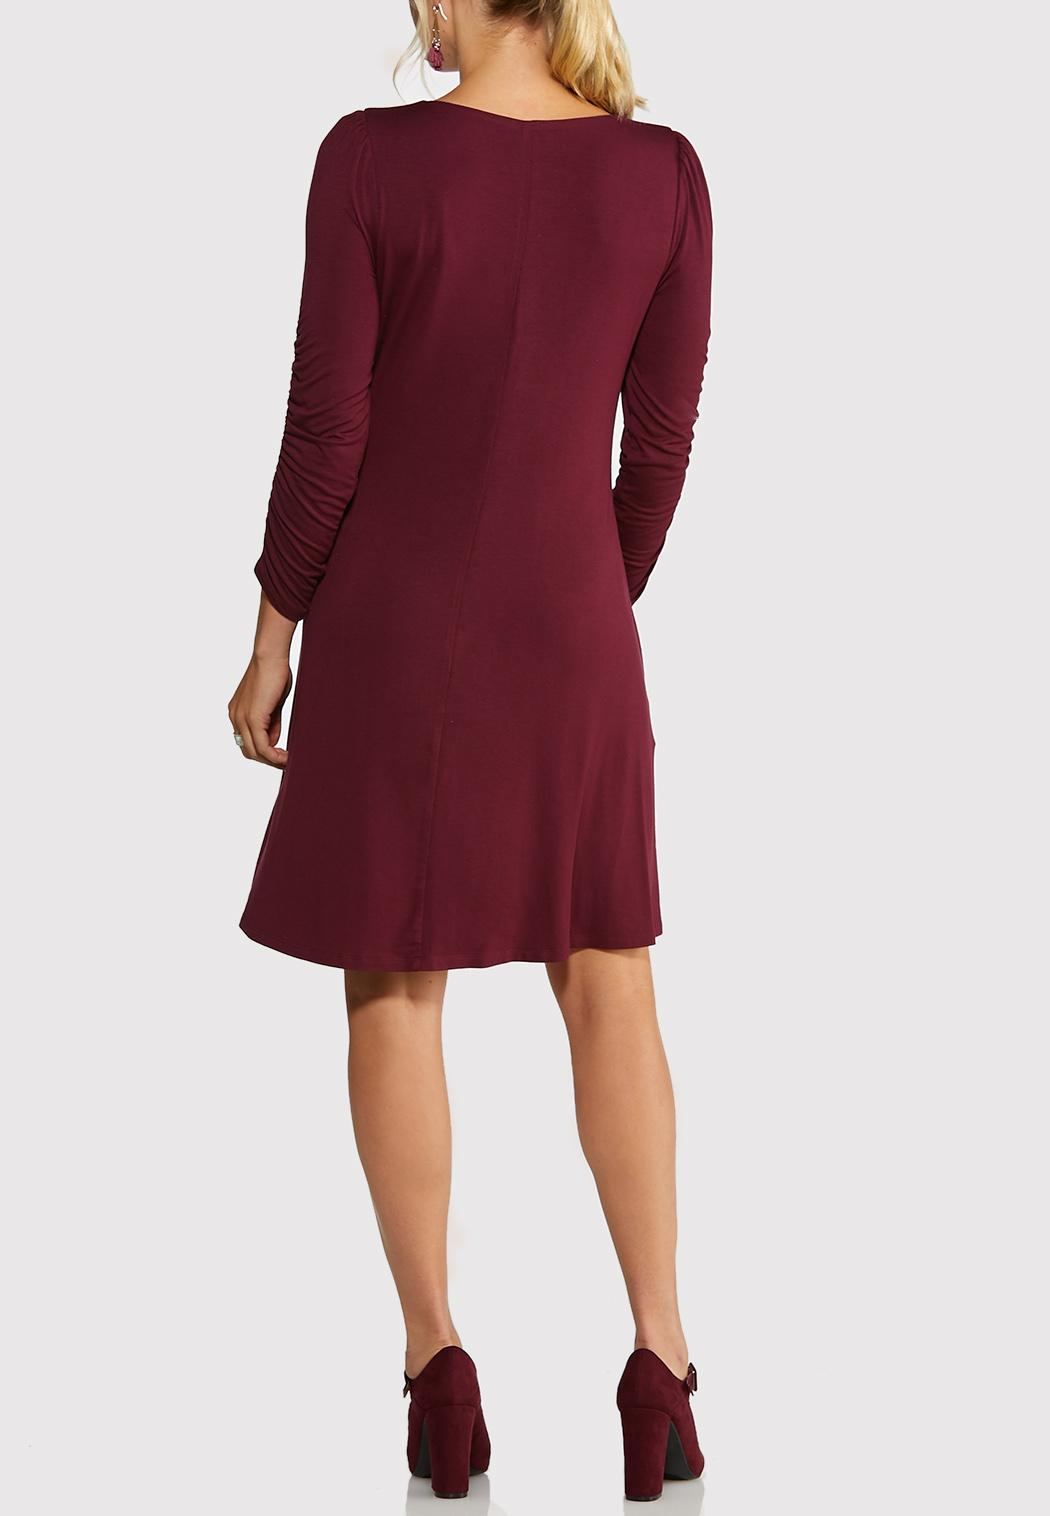 Ruched Sleeve Swing Dress (Item #43979034)